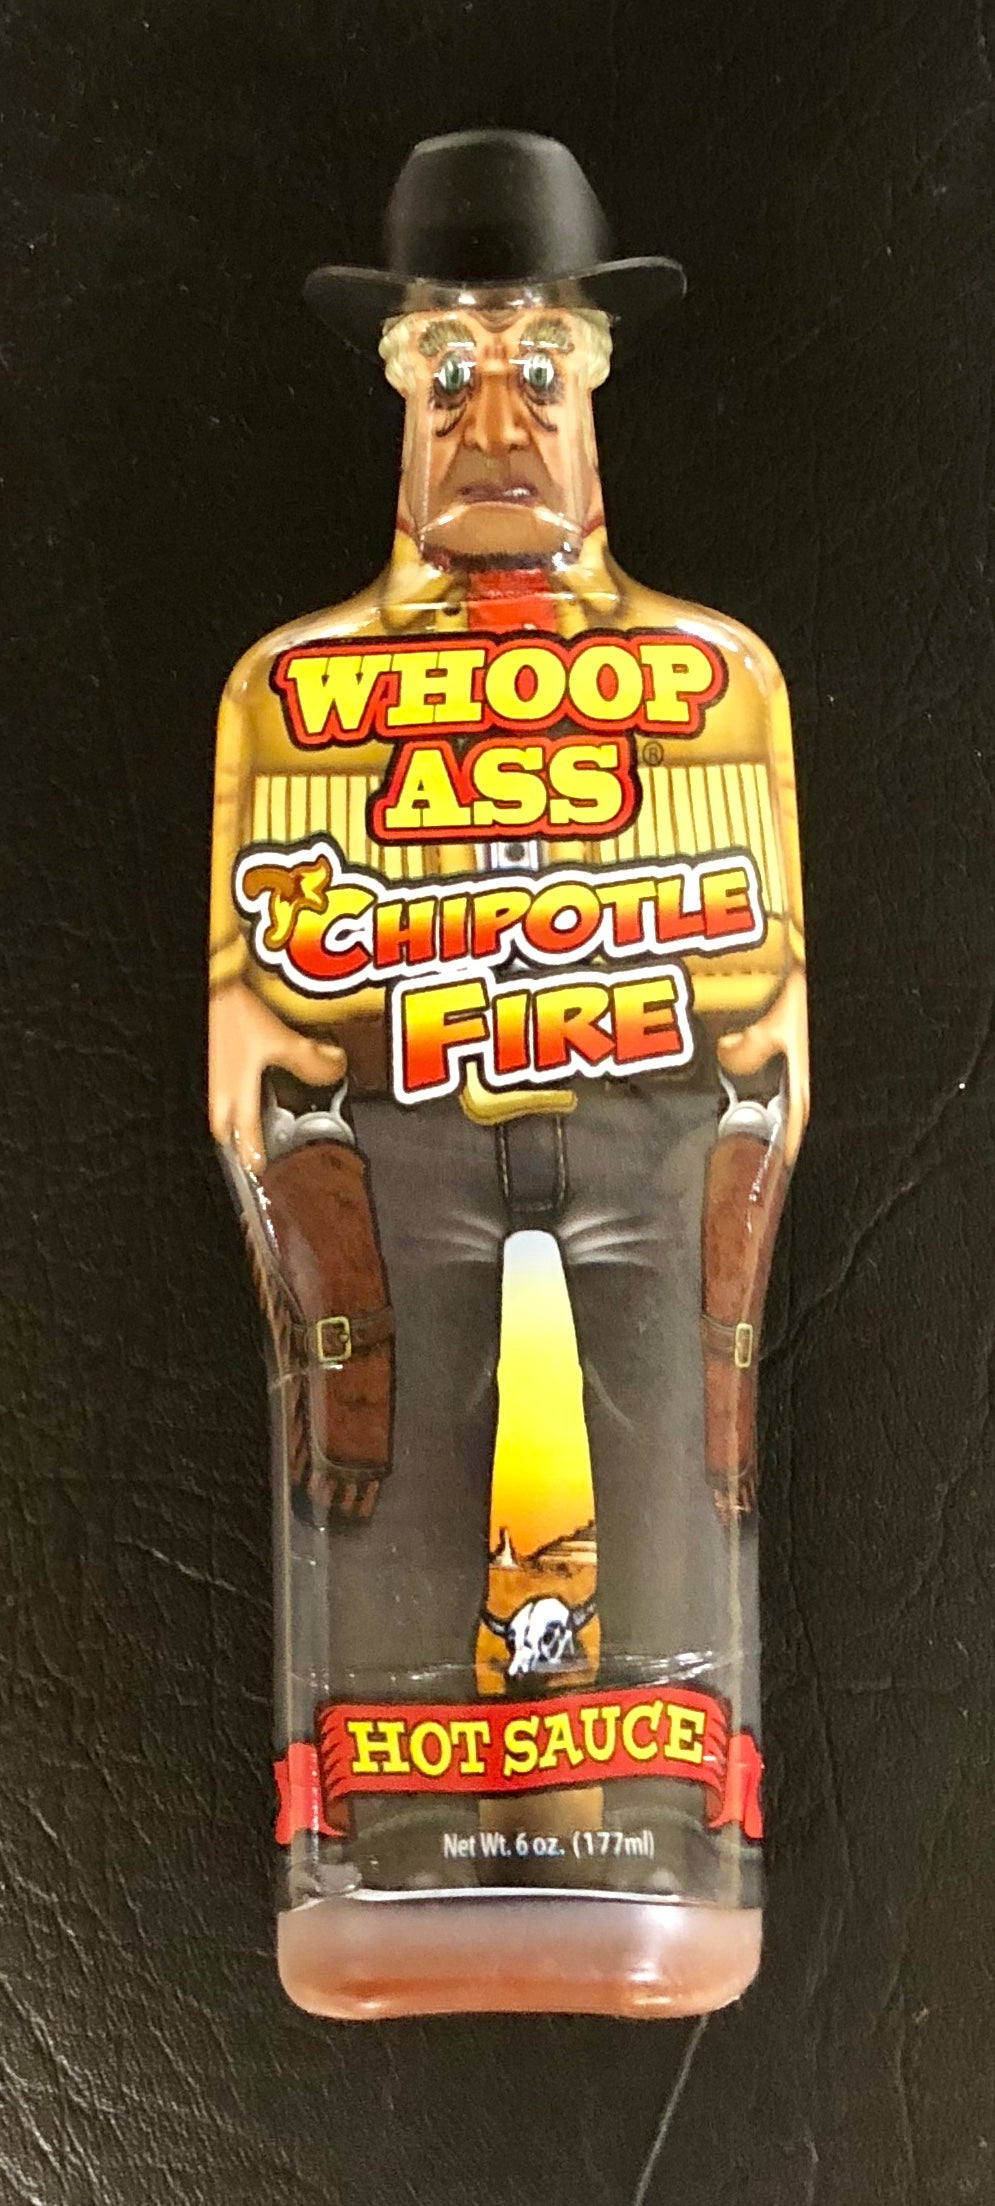 Ass Kickin' Whoop Ass Chipotle Fire